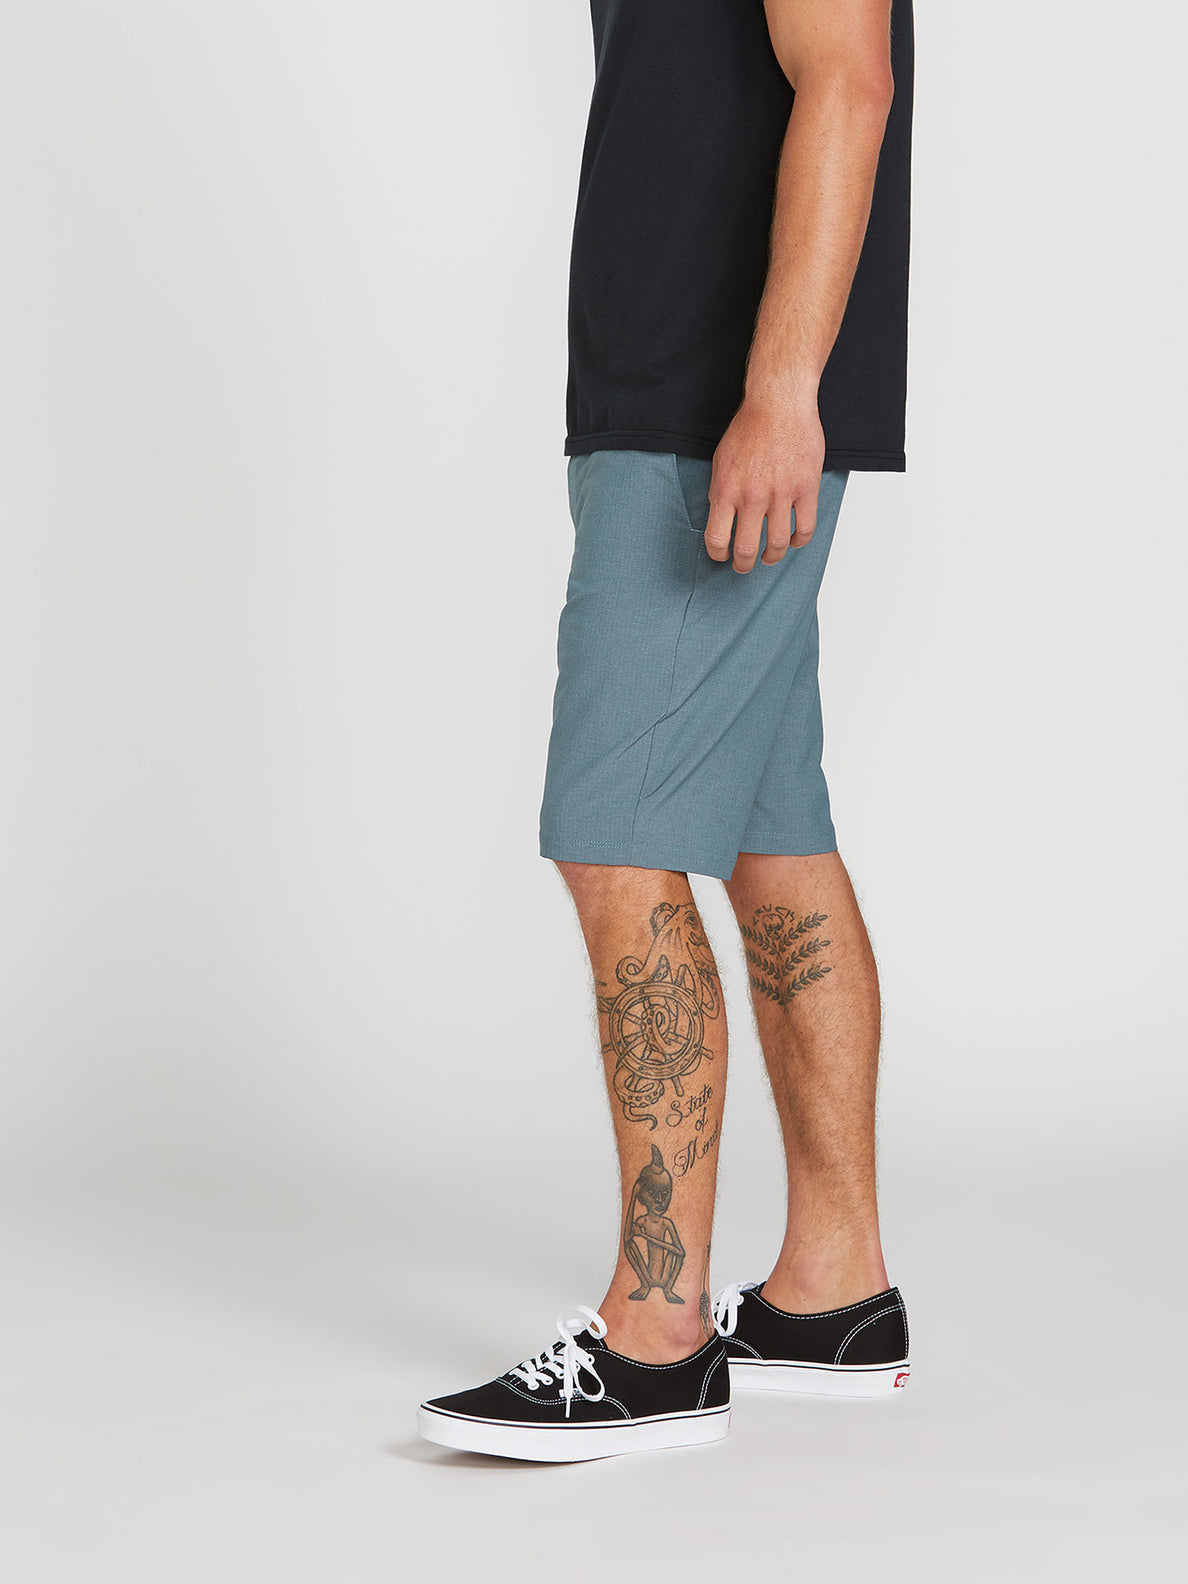 V Surf N' Turf Dry Hybrid Shorts - Airforce Blue